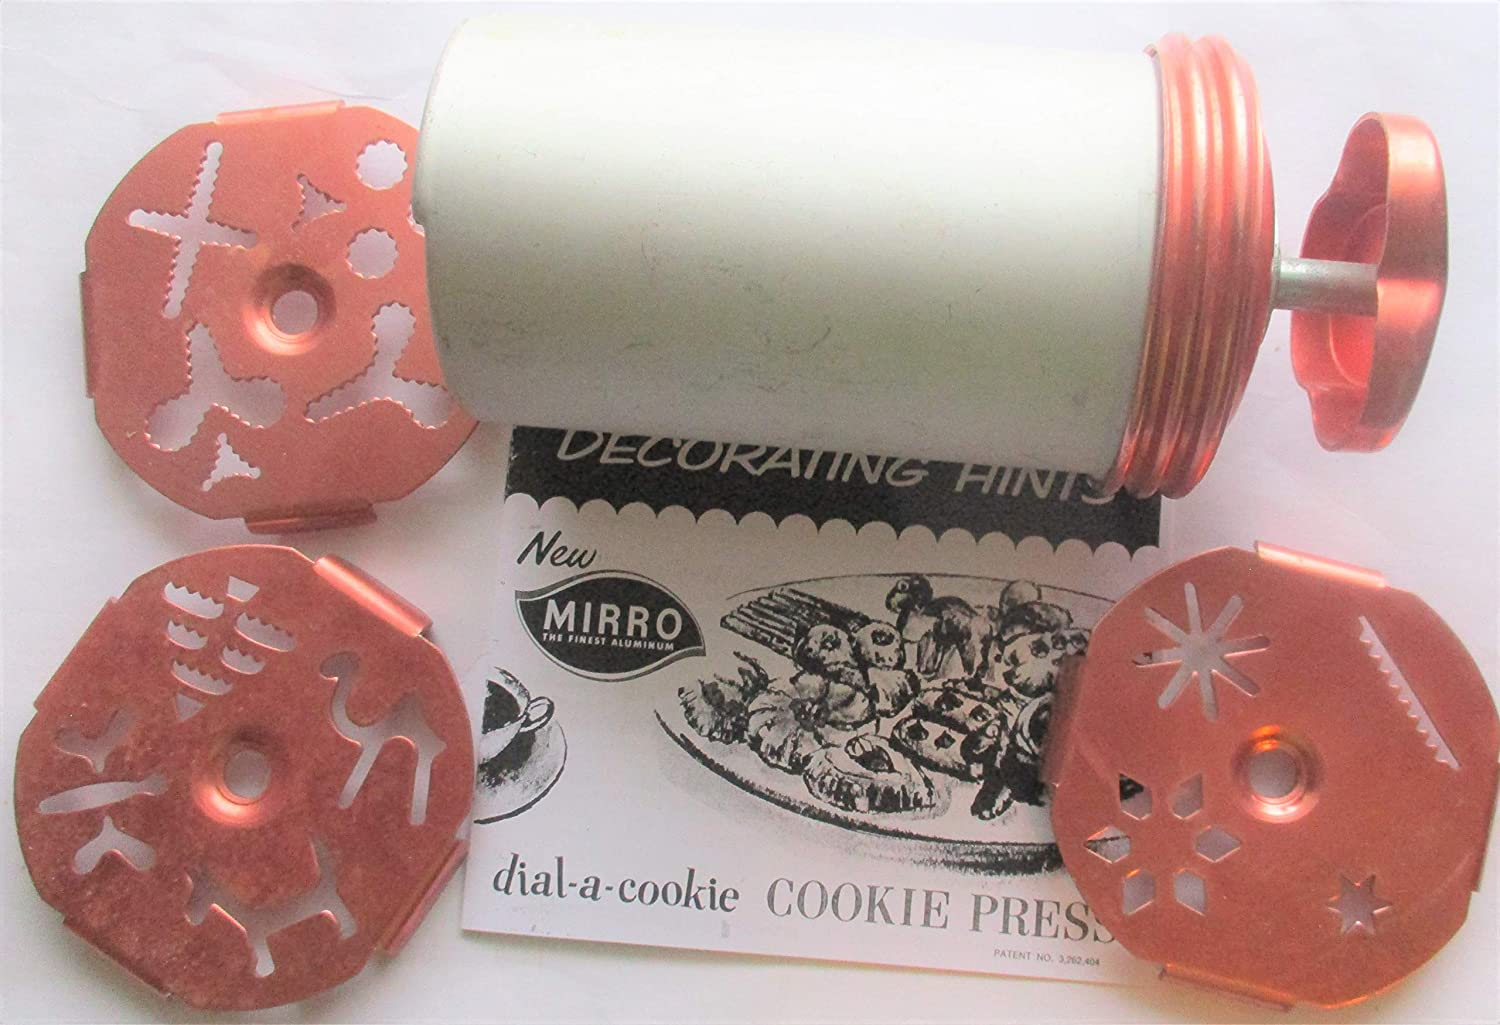 Vintage 1960s Mirro Aluminum and Copper Dial a Cookie Press for Spritz Cookies